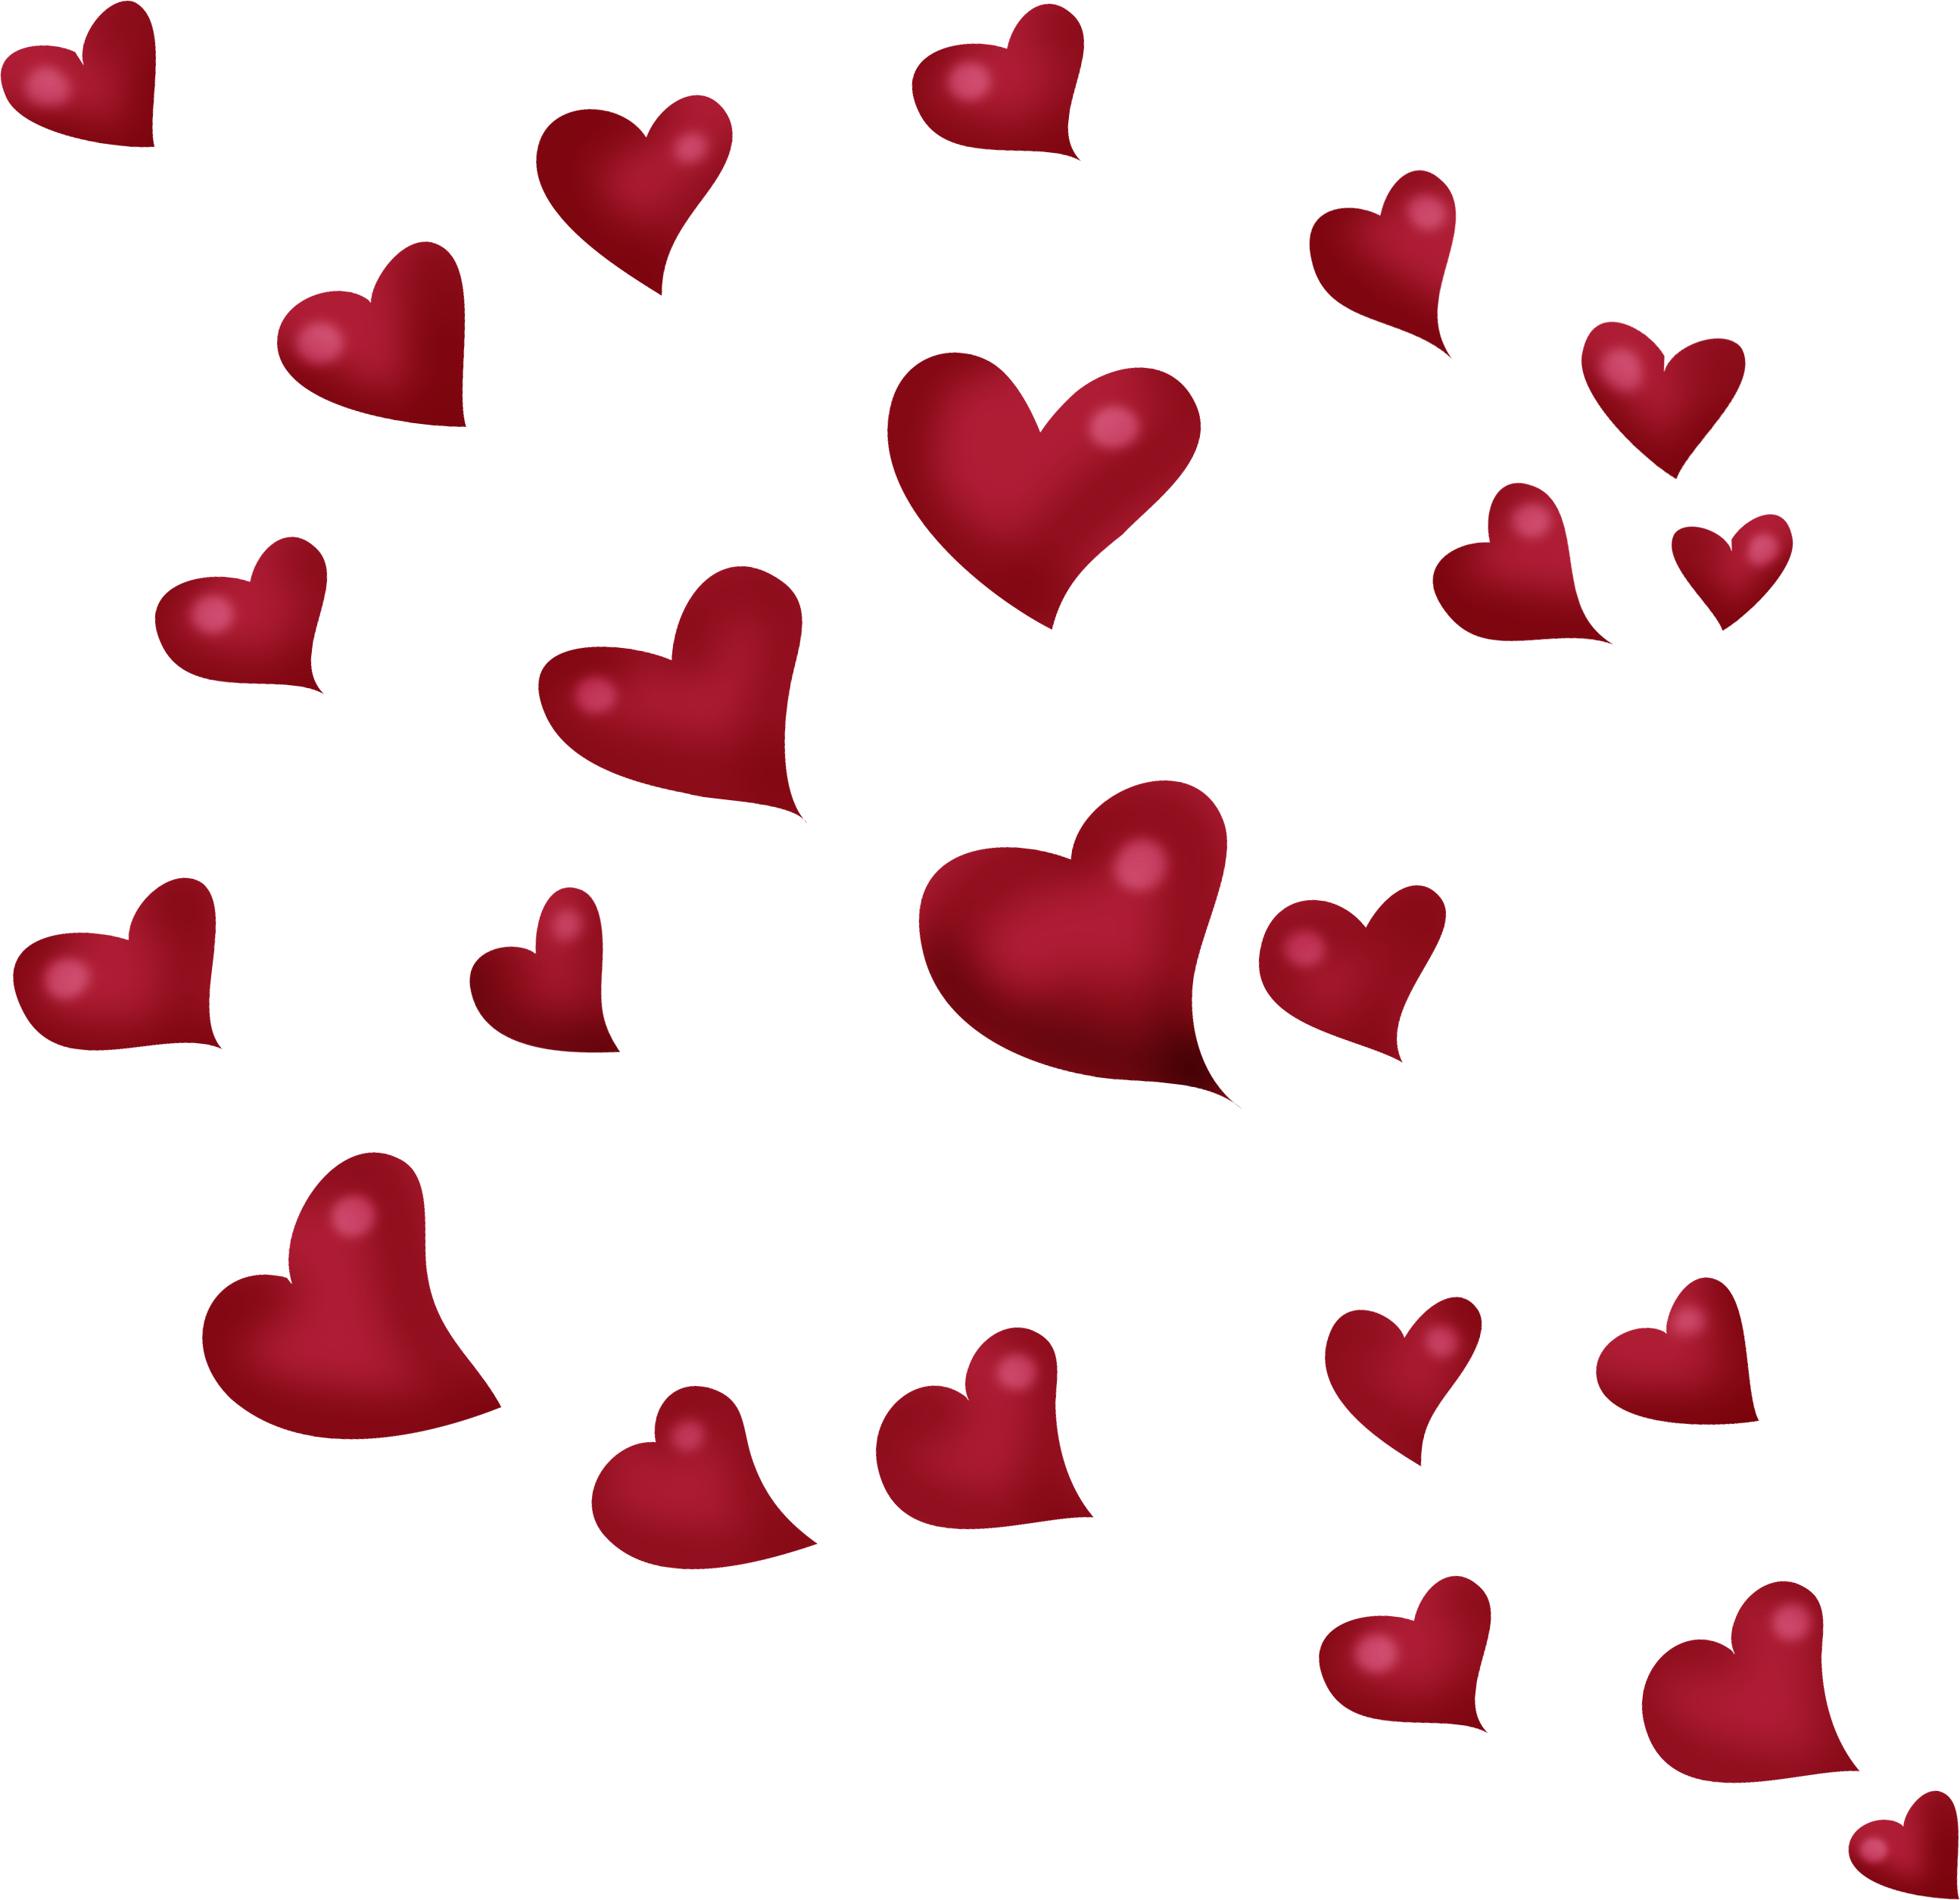 Flying heart clipart graphic free stock Flight Clip art - Flying Hearts Tanabata 2589*2510 transprent Png ... graphic free stock